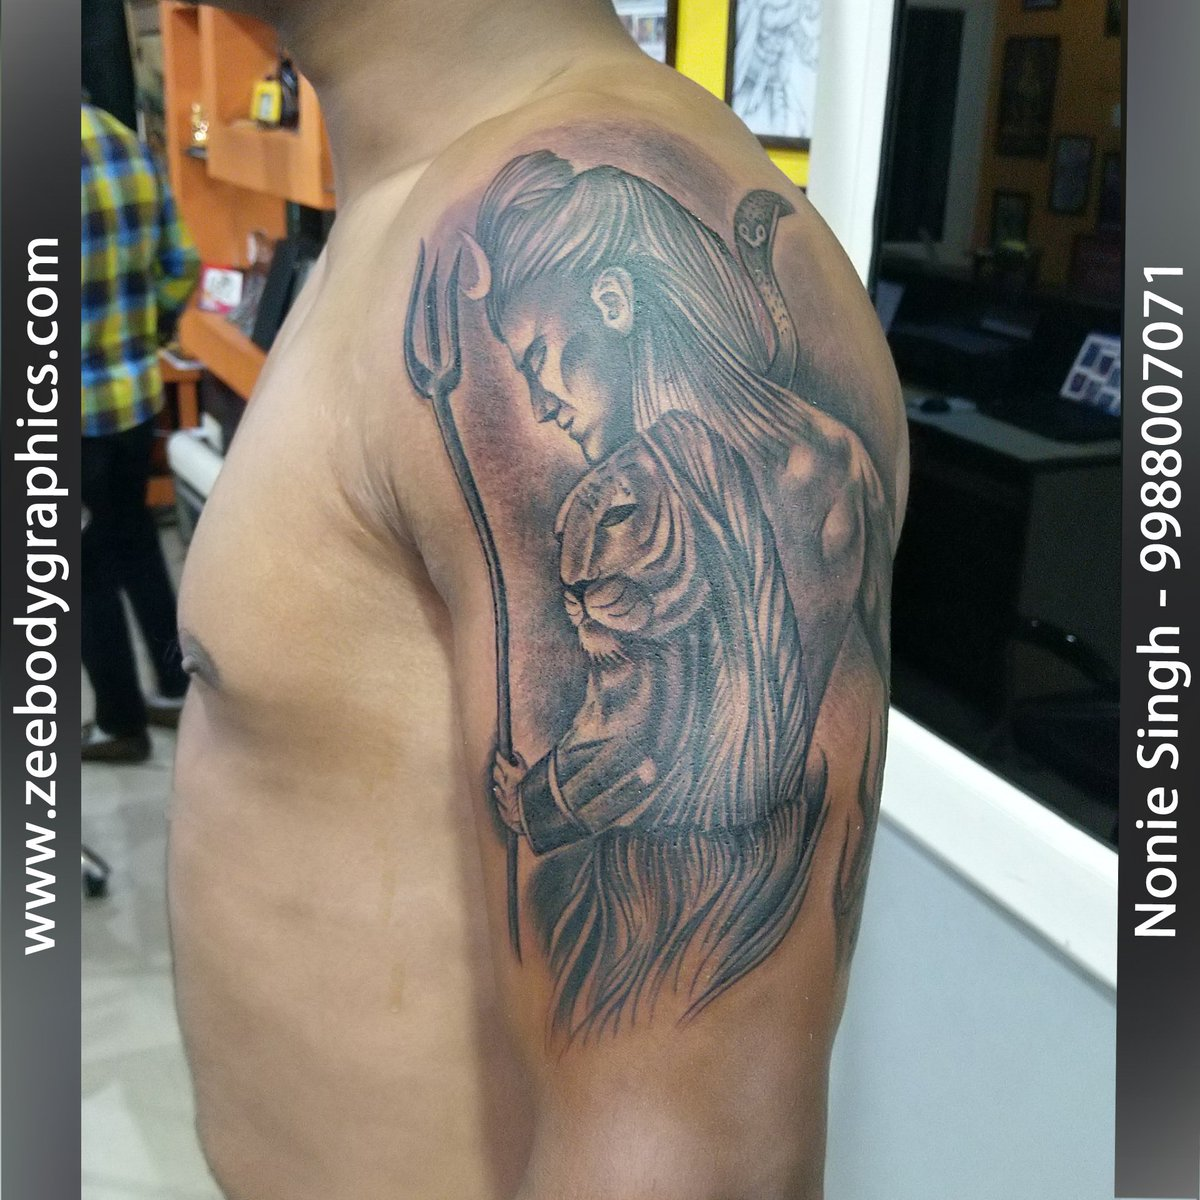 b5ec269753bc4 Here you will find most beautiful and attractive Shiva tattoo designs and  ideas for your Shiva tattoos. Get #AmazingShivaTattooDesign at affordable  price. ...